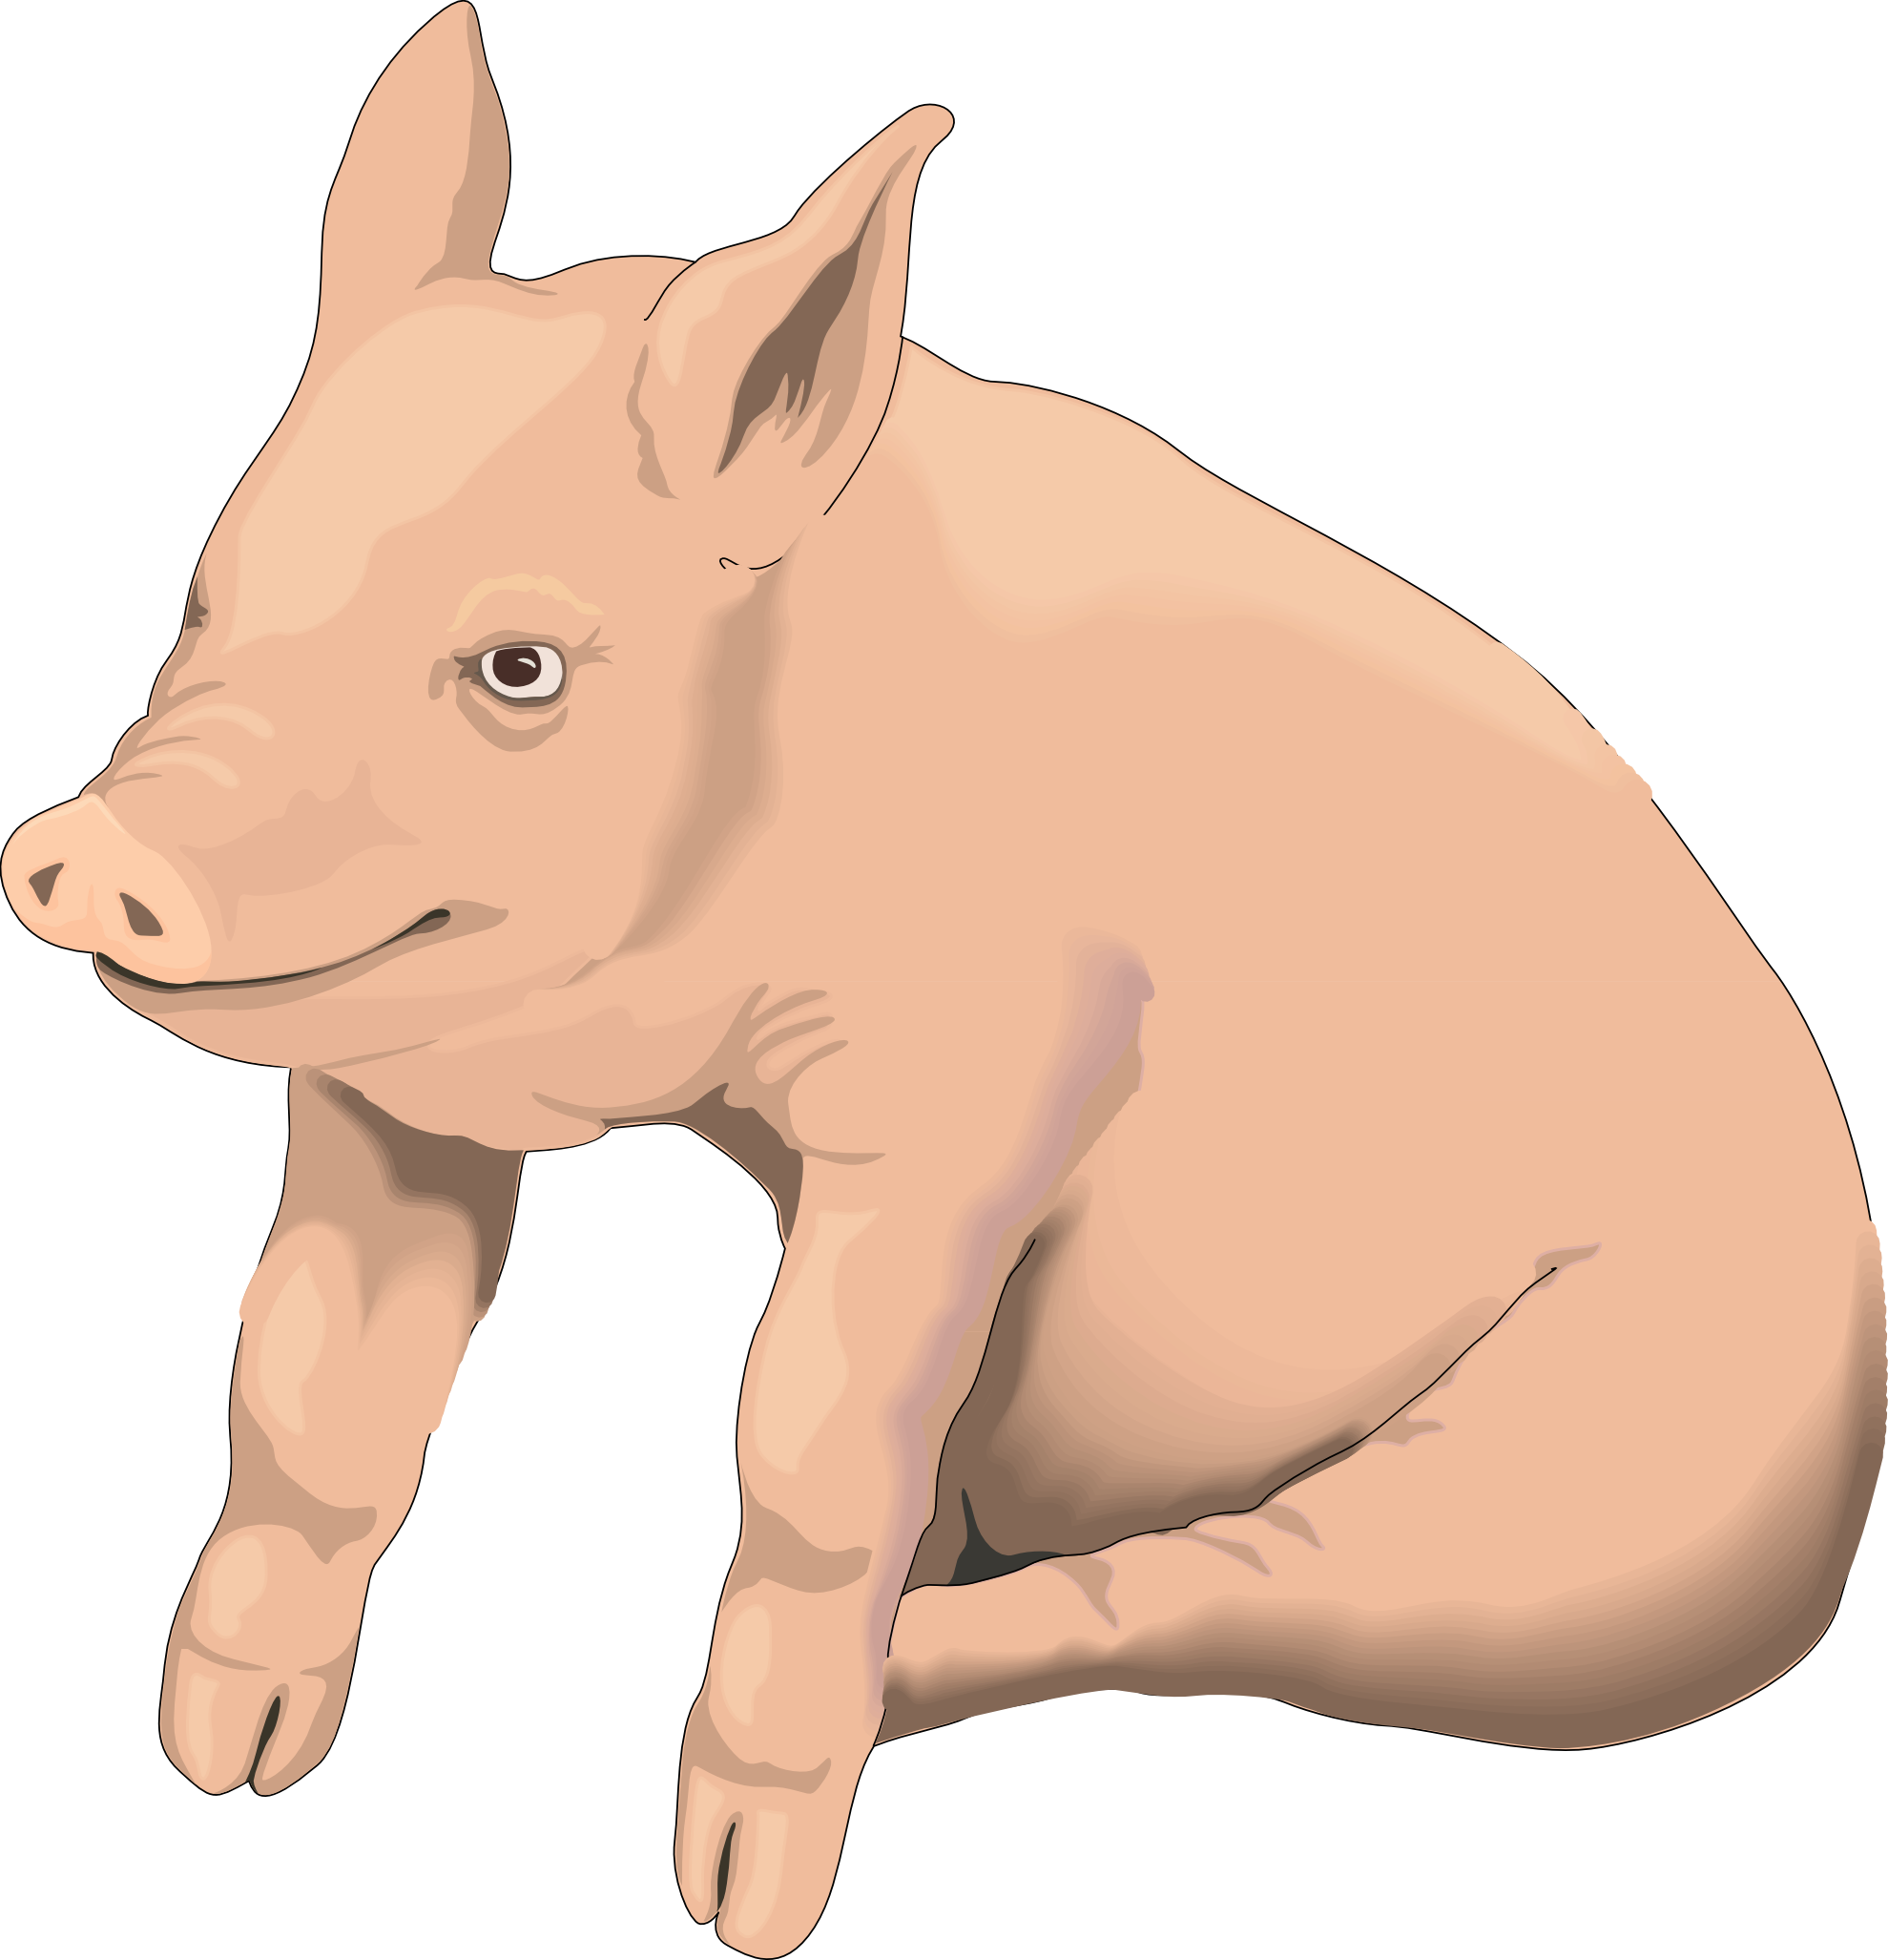 Clipart pig transparent background. Png picture web icons